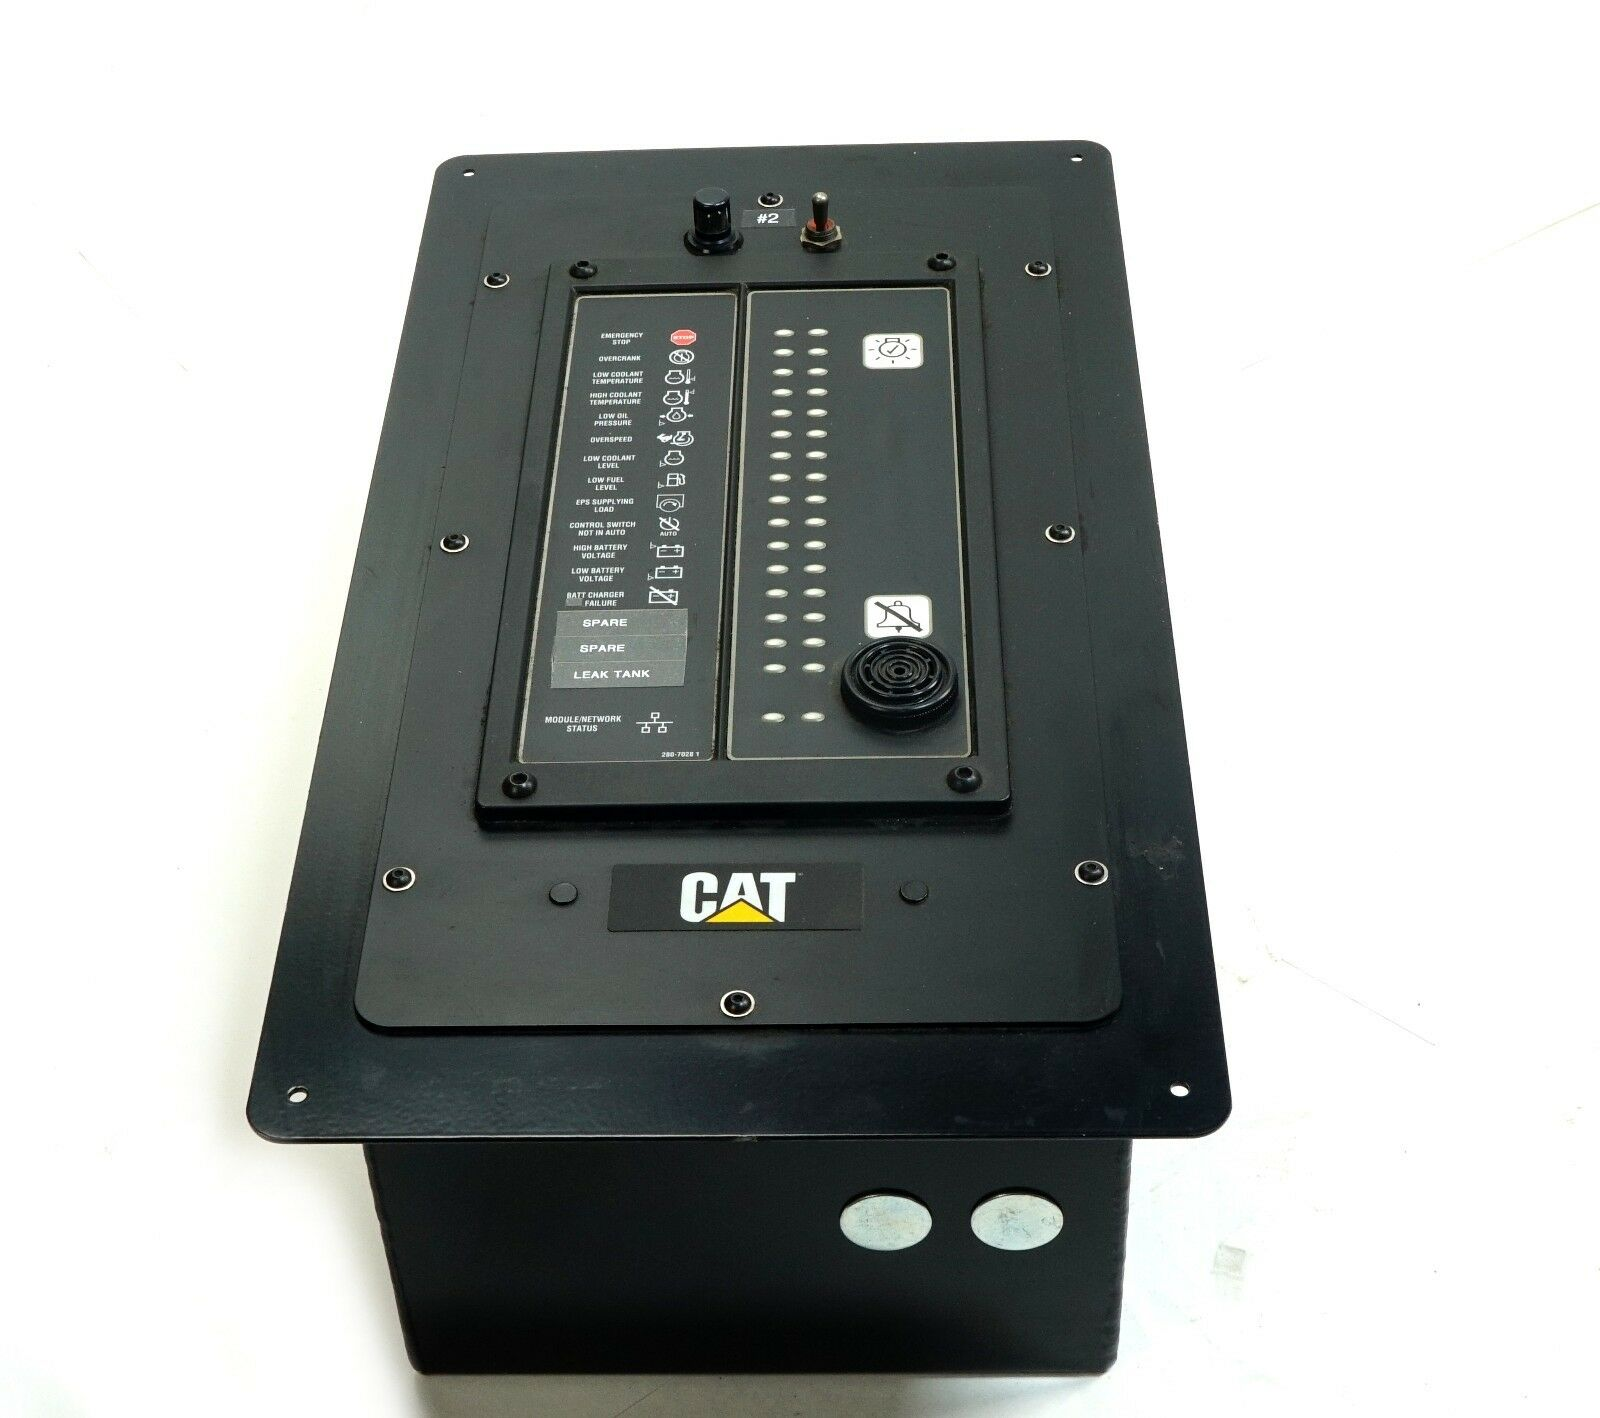 caterpillar generator control panel display